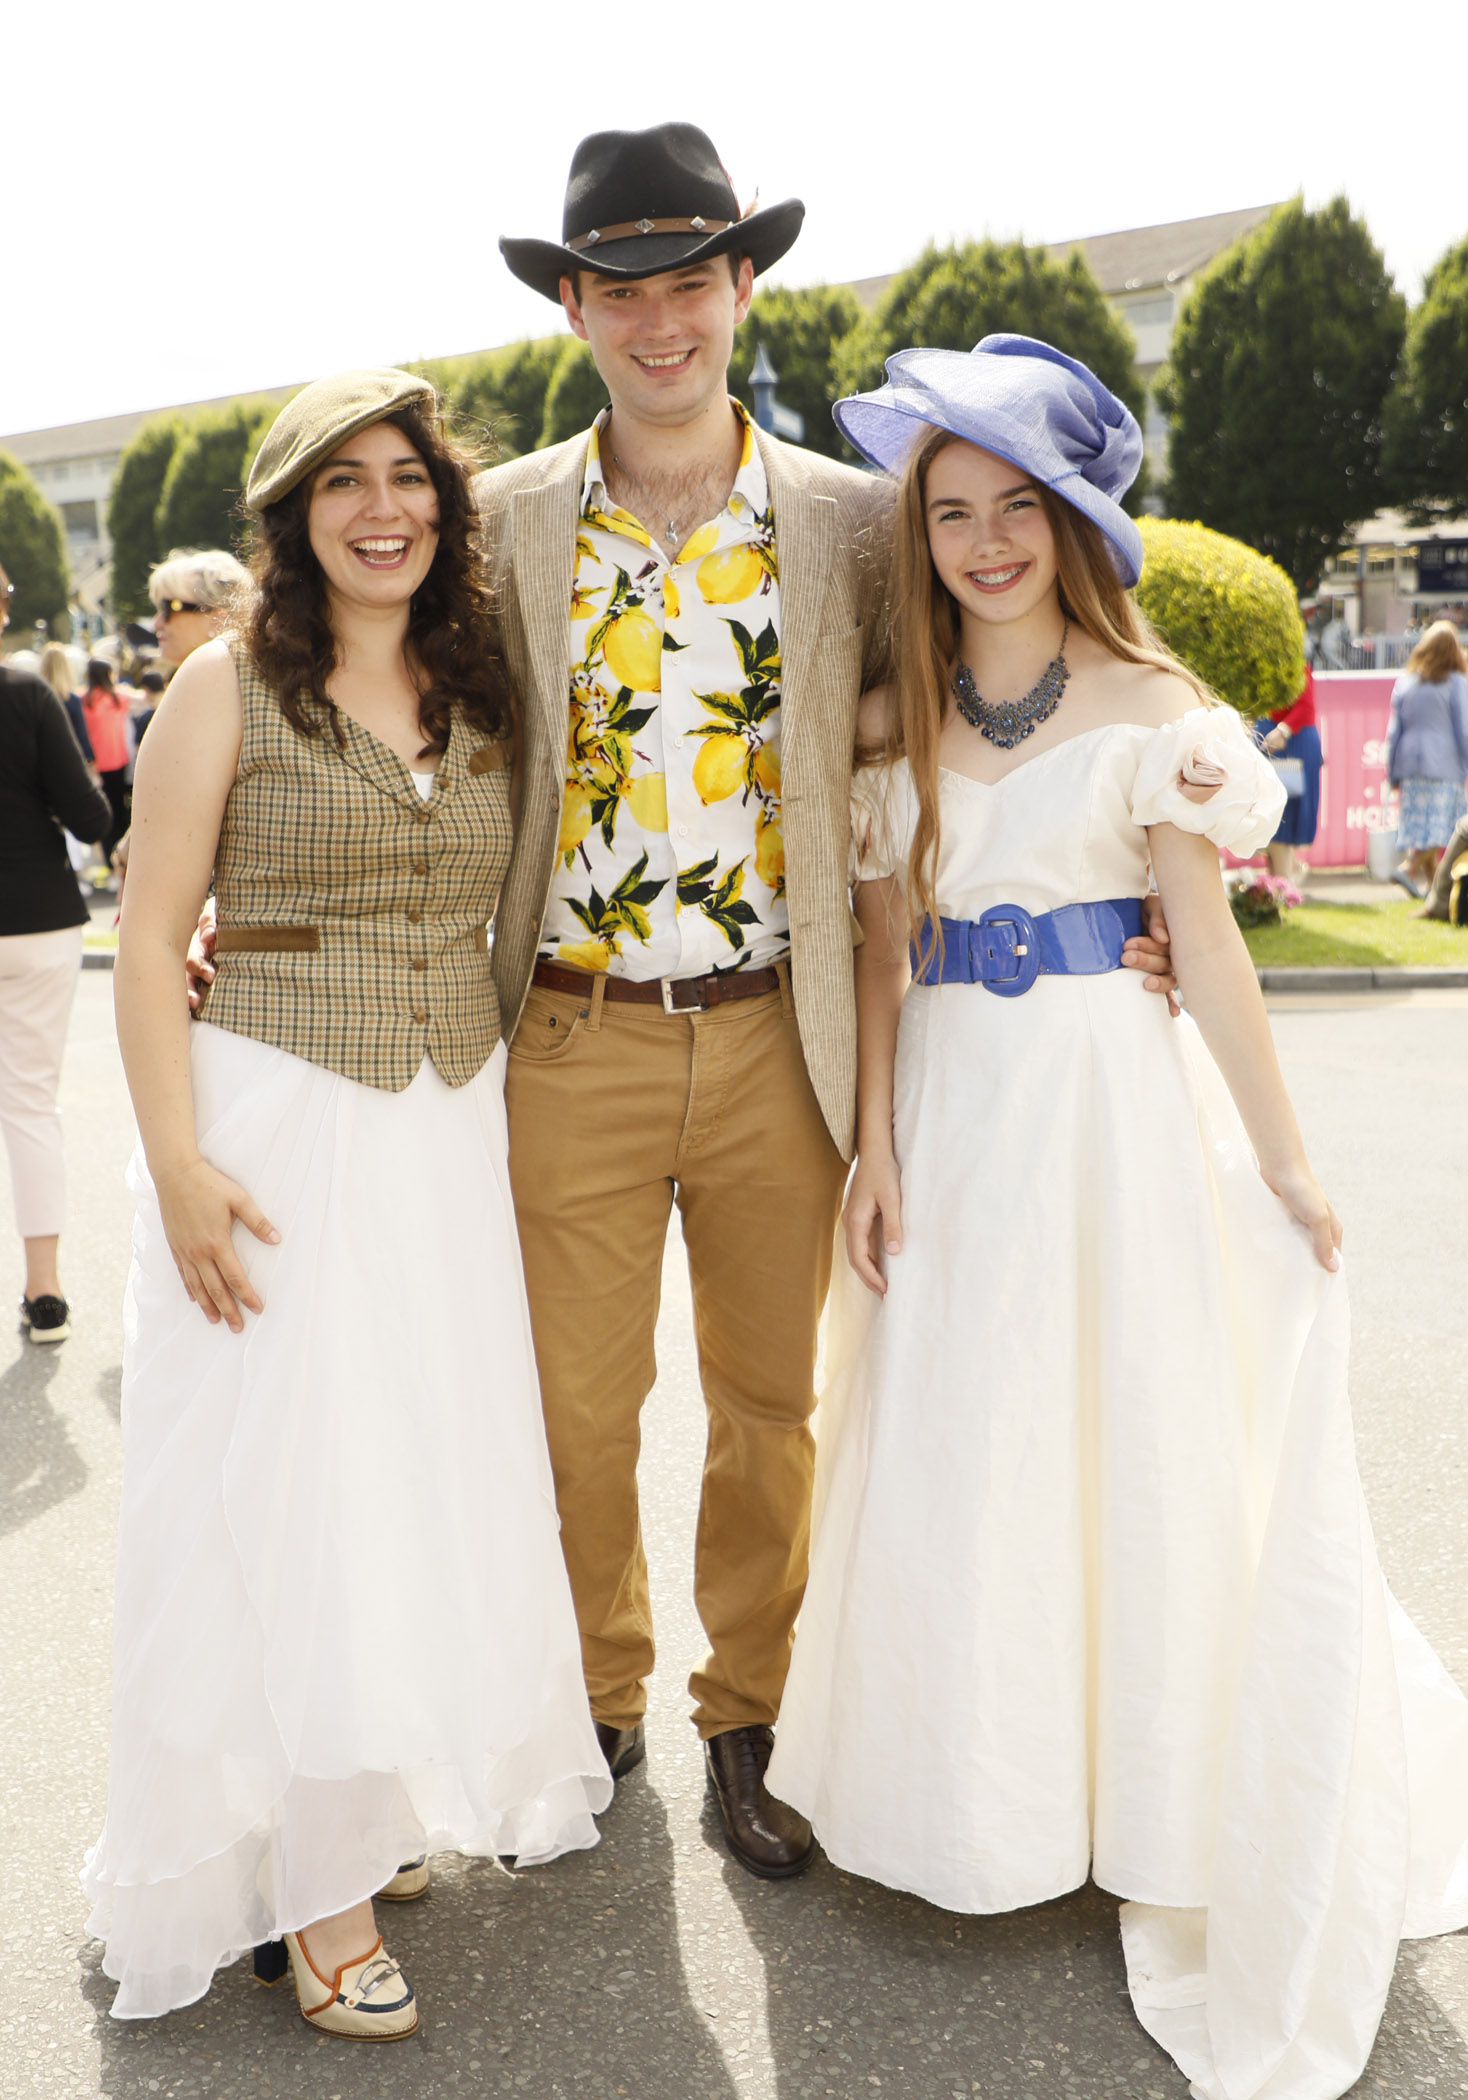 Mercedes and Jack Furey with Chloe Furey Whelan  at the Dundrum Town Centre Ladies' Day at the Dublin Horse Show in the RDS. Photo: Kieran Harnett